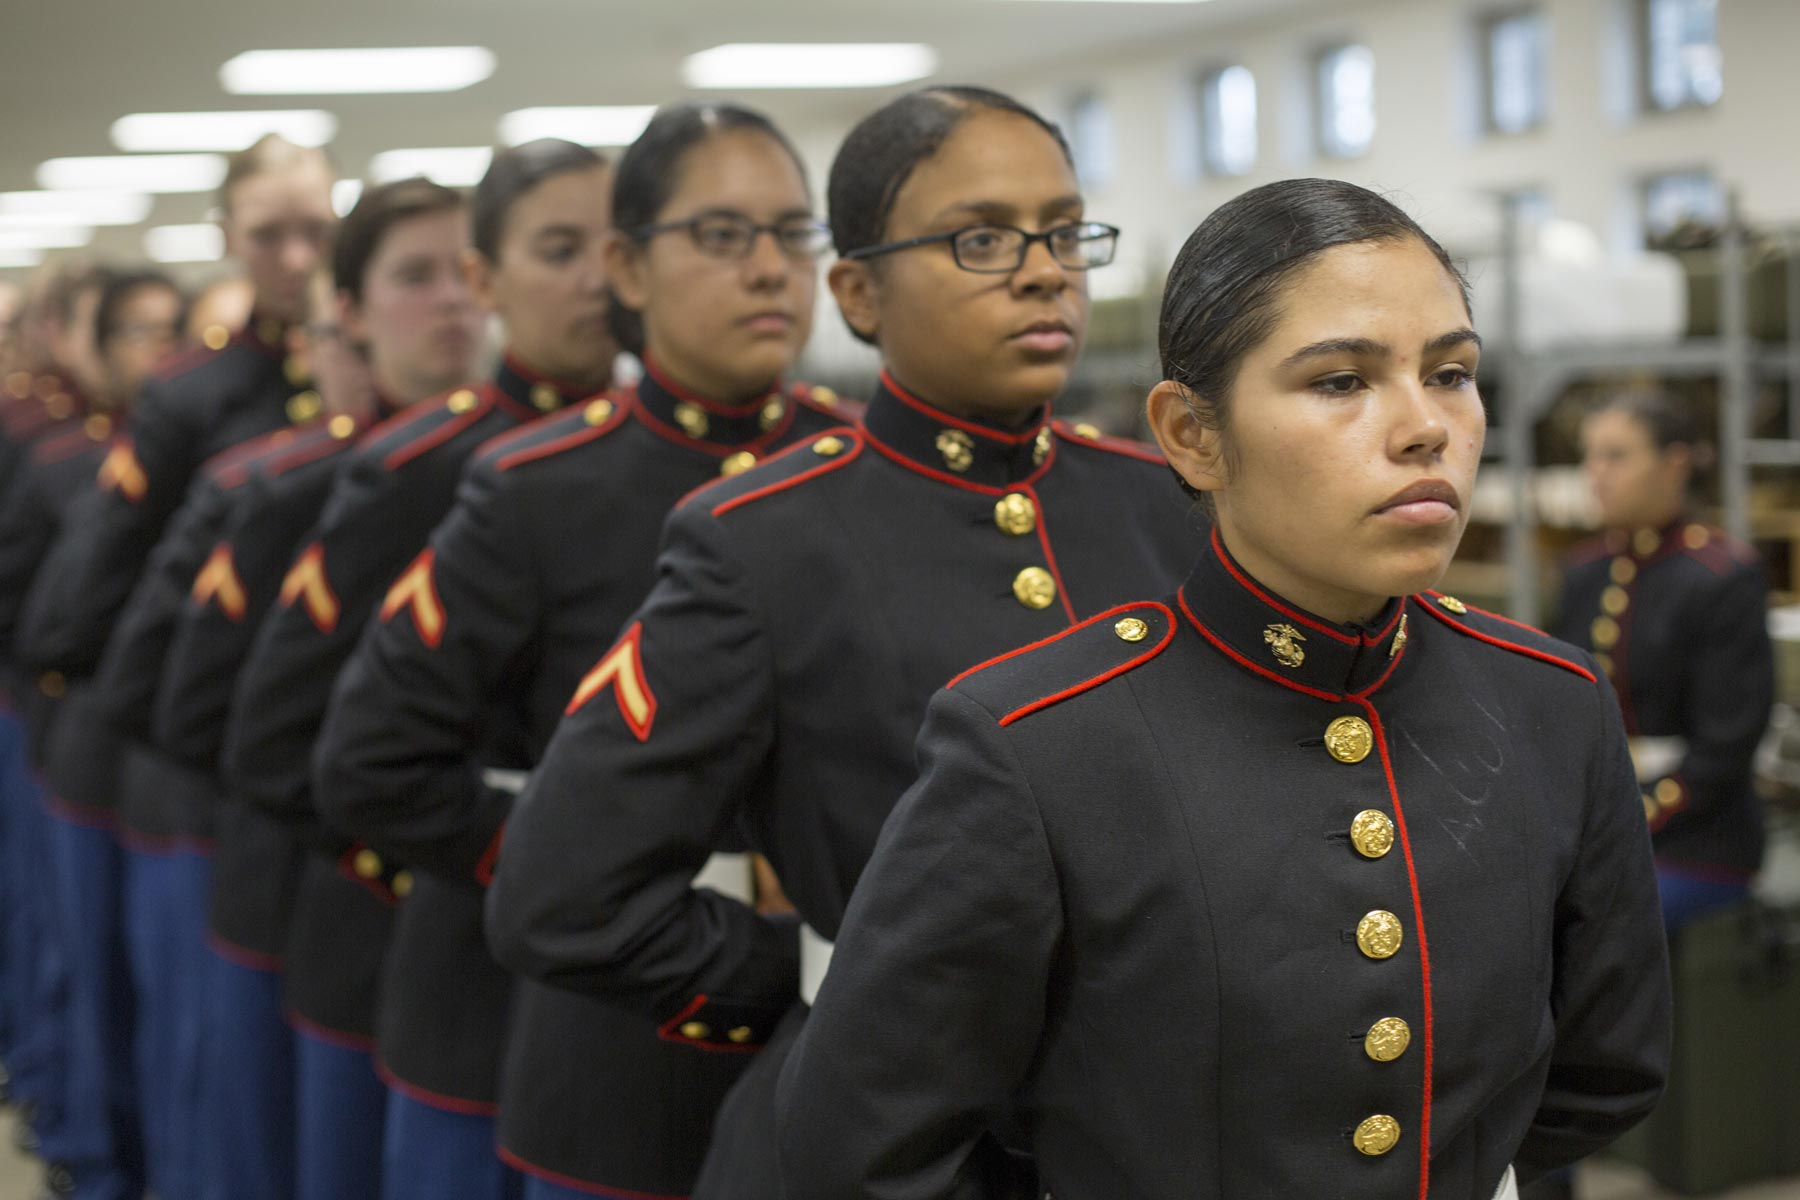 First Class of Female Marine Recruits Graduates in New Dress Blues  Militarycom